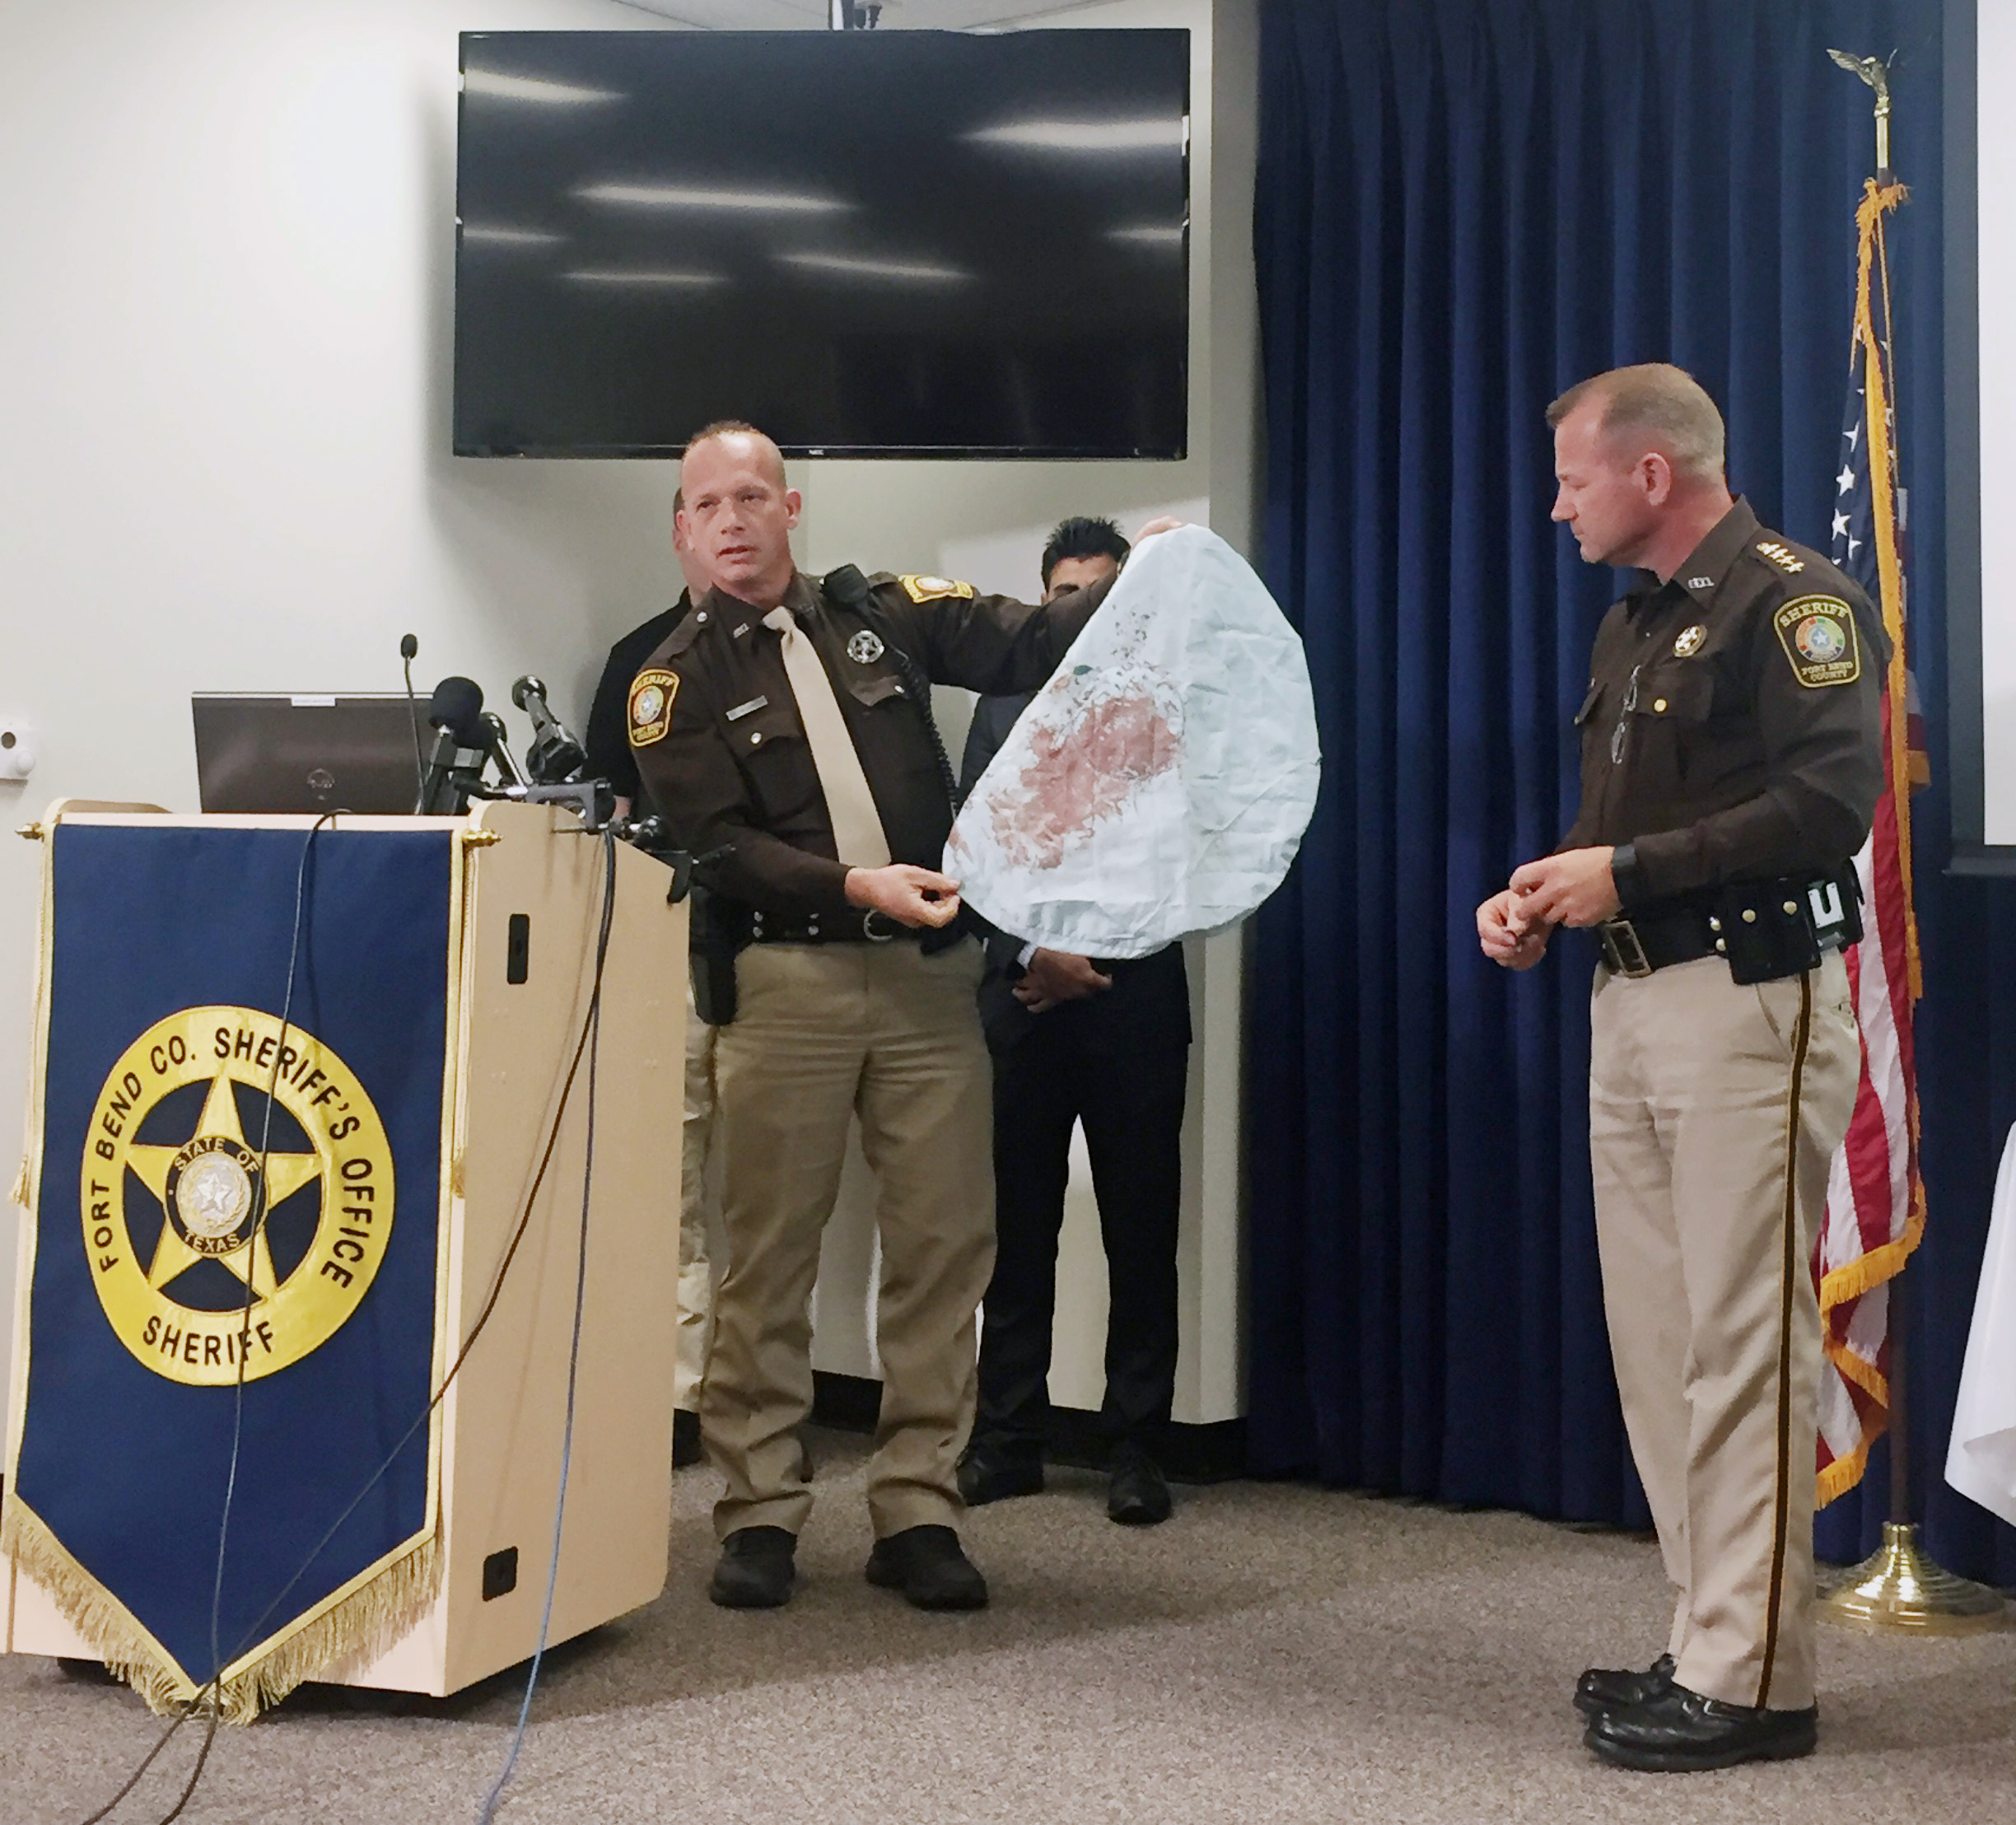 Deputy Danny Beckworth displays part of a defective airbag believed to have killed 17-year-old Huma Hanif during a news conference in Houston on April 7, 2016.